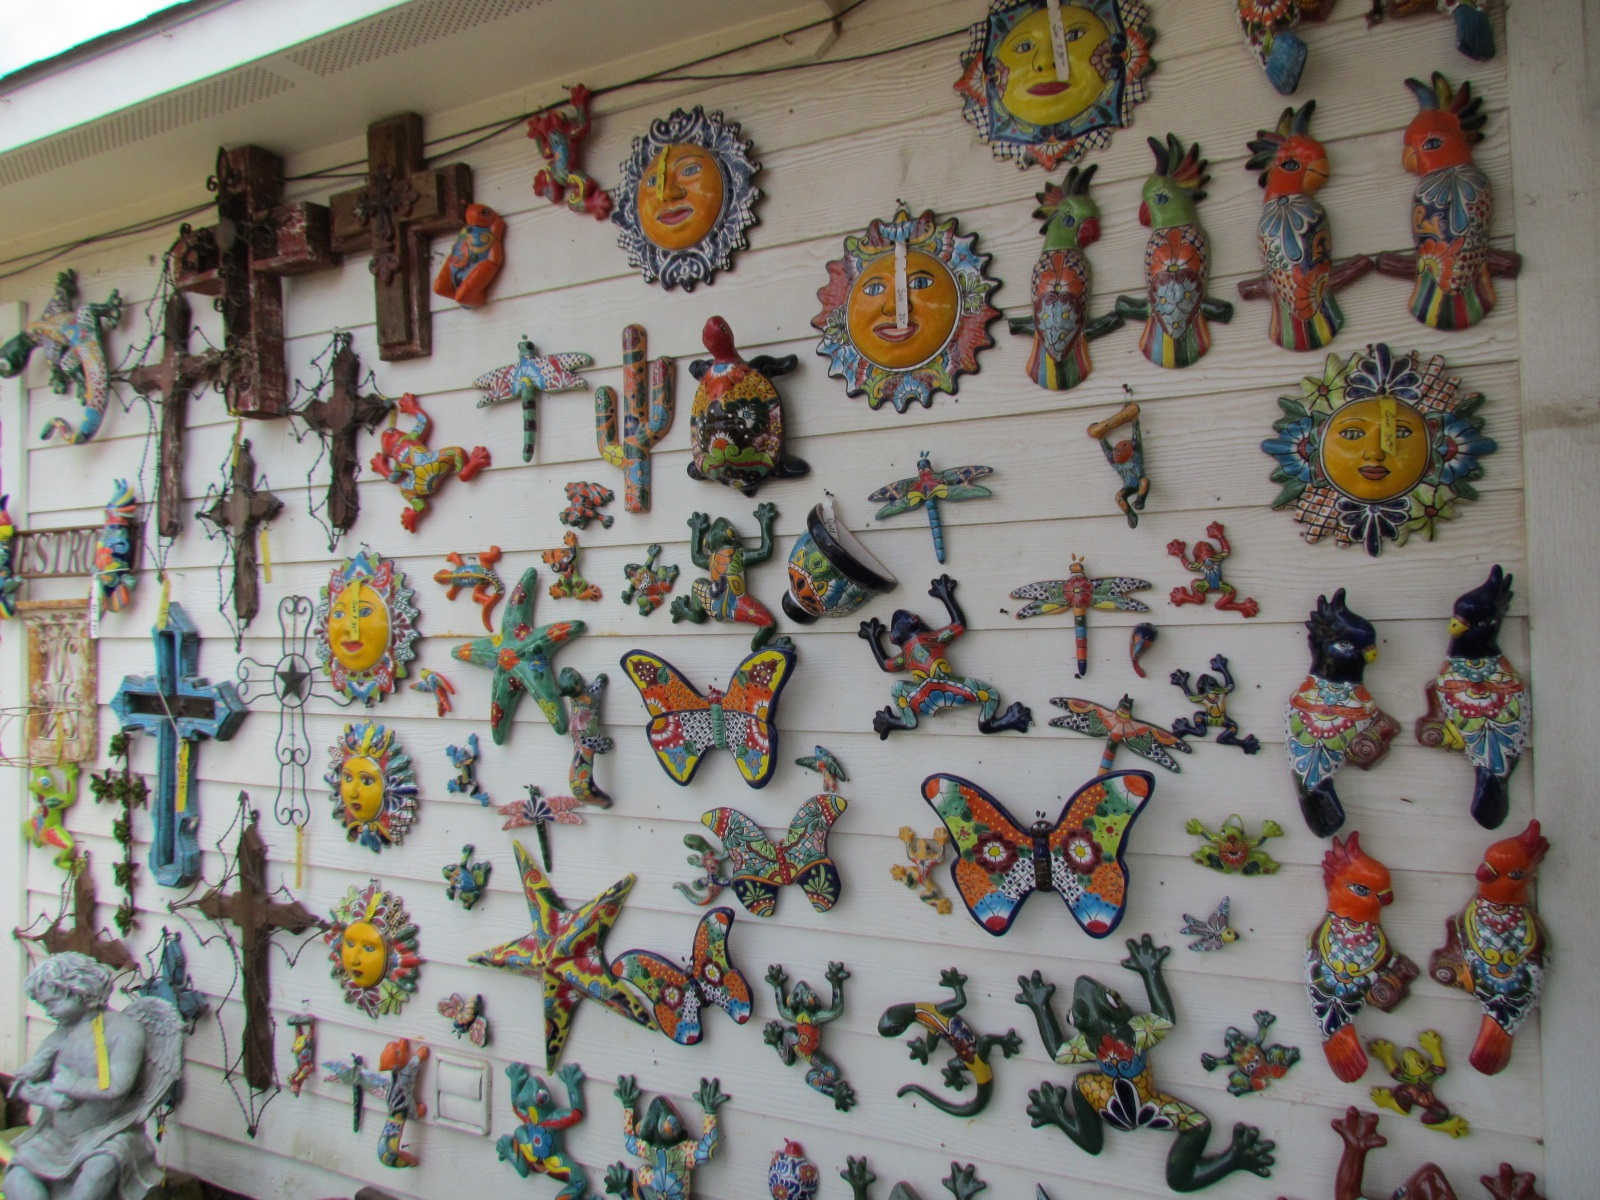 Talavera art at J&J Nursery, Spring, TX